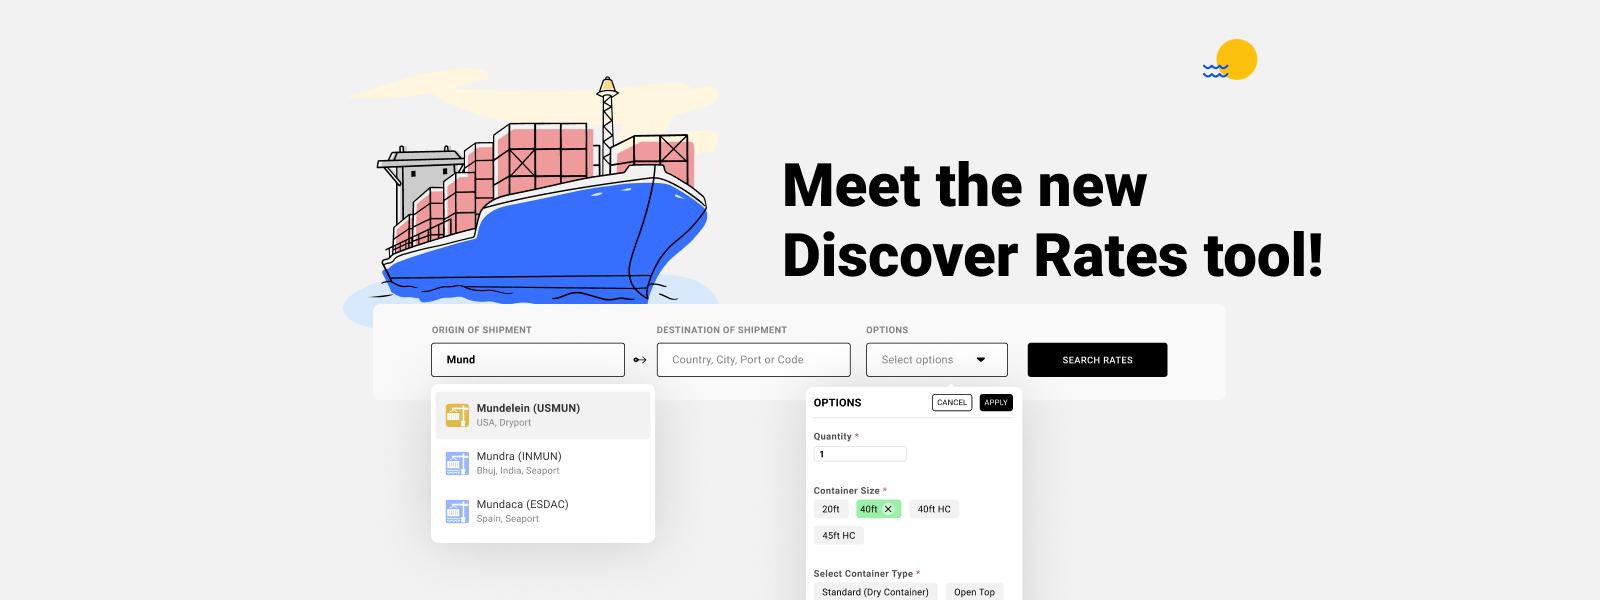 Get Instant Freight Quotes Online with Cogoport's Discover Rates Tool